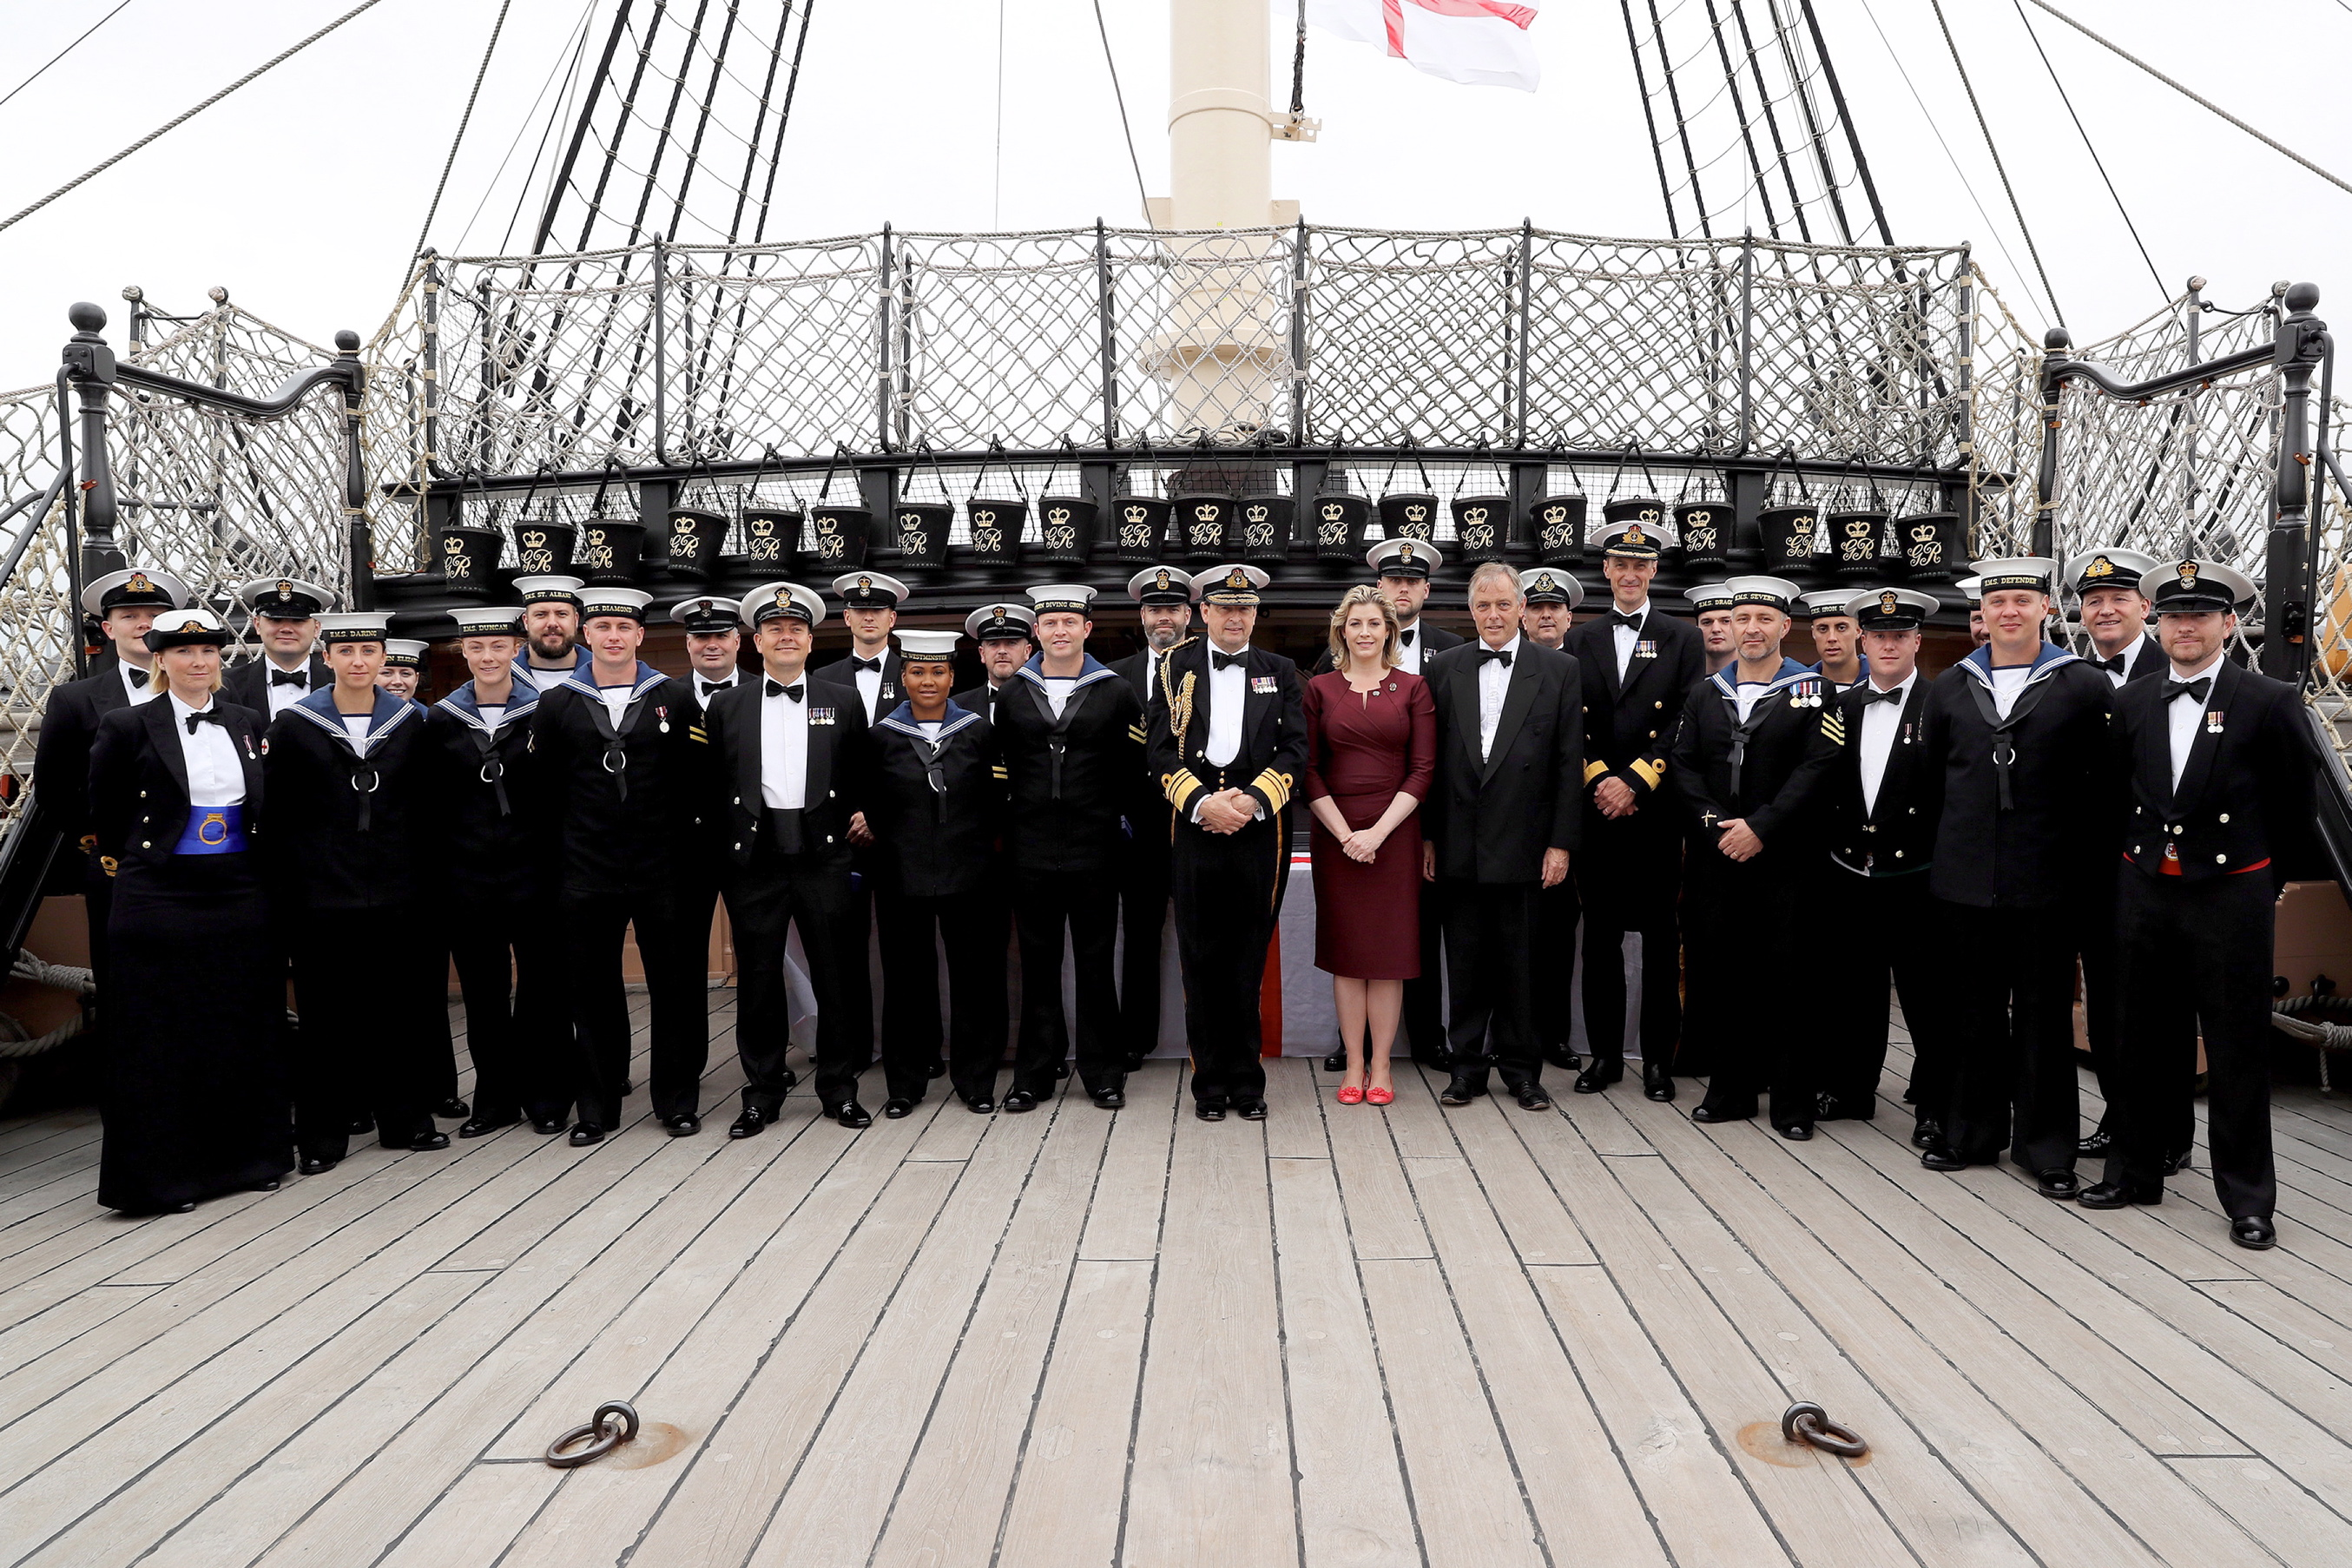 """Star sailors from the Royal Navy's Portsmouth flotilla have been rewarded for outstanding achievements by the Armed Forces Minister.  In her last day in office Penny Mordaunt presented 29 awards to personnel who have gone the extra mile for their ship or unit during the past 12 months. The ceremony on Friday (July 15) was held on board HMS Victory and was followed by a dinner at HMS Nelson.  Two recipients of the award are based on the 65,000-tonne giant aircraft carrier HMS Queen Elizabeth, currently in build at Rosyth. Chief Petty Officer Graeme Duncan was recognised for his efforts in working with industry to ensure that the ship's fresh water system, galley and laundry were ready for the ship's company to move on board.  Medical Assistant Louise Whalley was rewarded for her key role in introducing and managing the ship's first aid and medical training plans and for tailoring effective bespoke training for different departments. Commander Portsmouth Flotilla, Commodore Peter Sparkes said: """"In a challenging year when the Portsmouth Flotilla has scarcely been busier, it is really important that we recognise some of the extraordinary individual efforts of our Sailors, which contribute so powerfully to our collective successes.    Consent Held at FRPU(E)"""